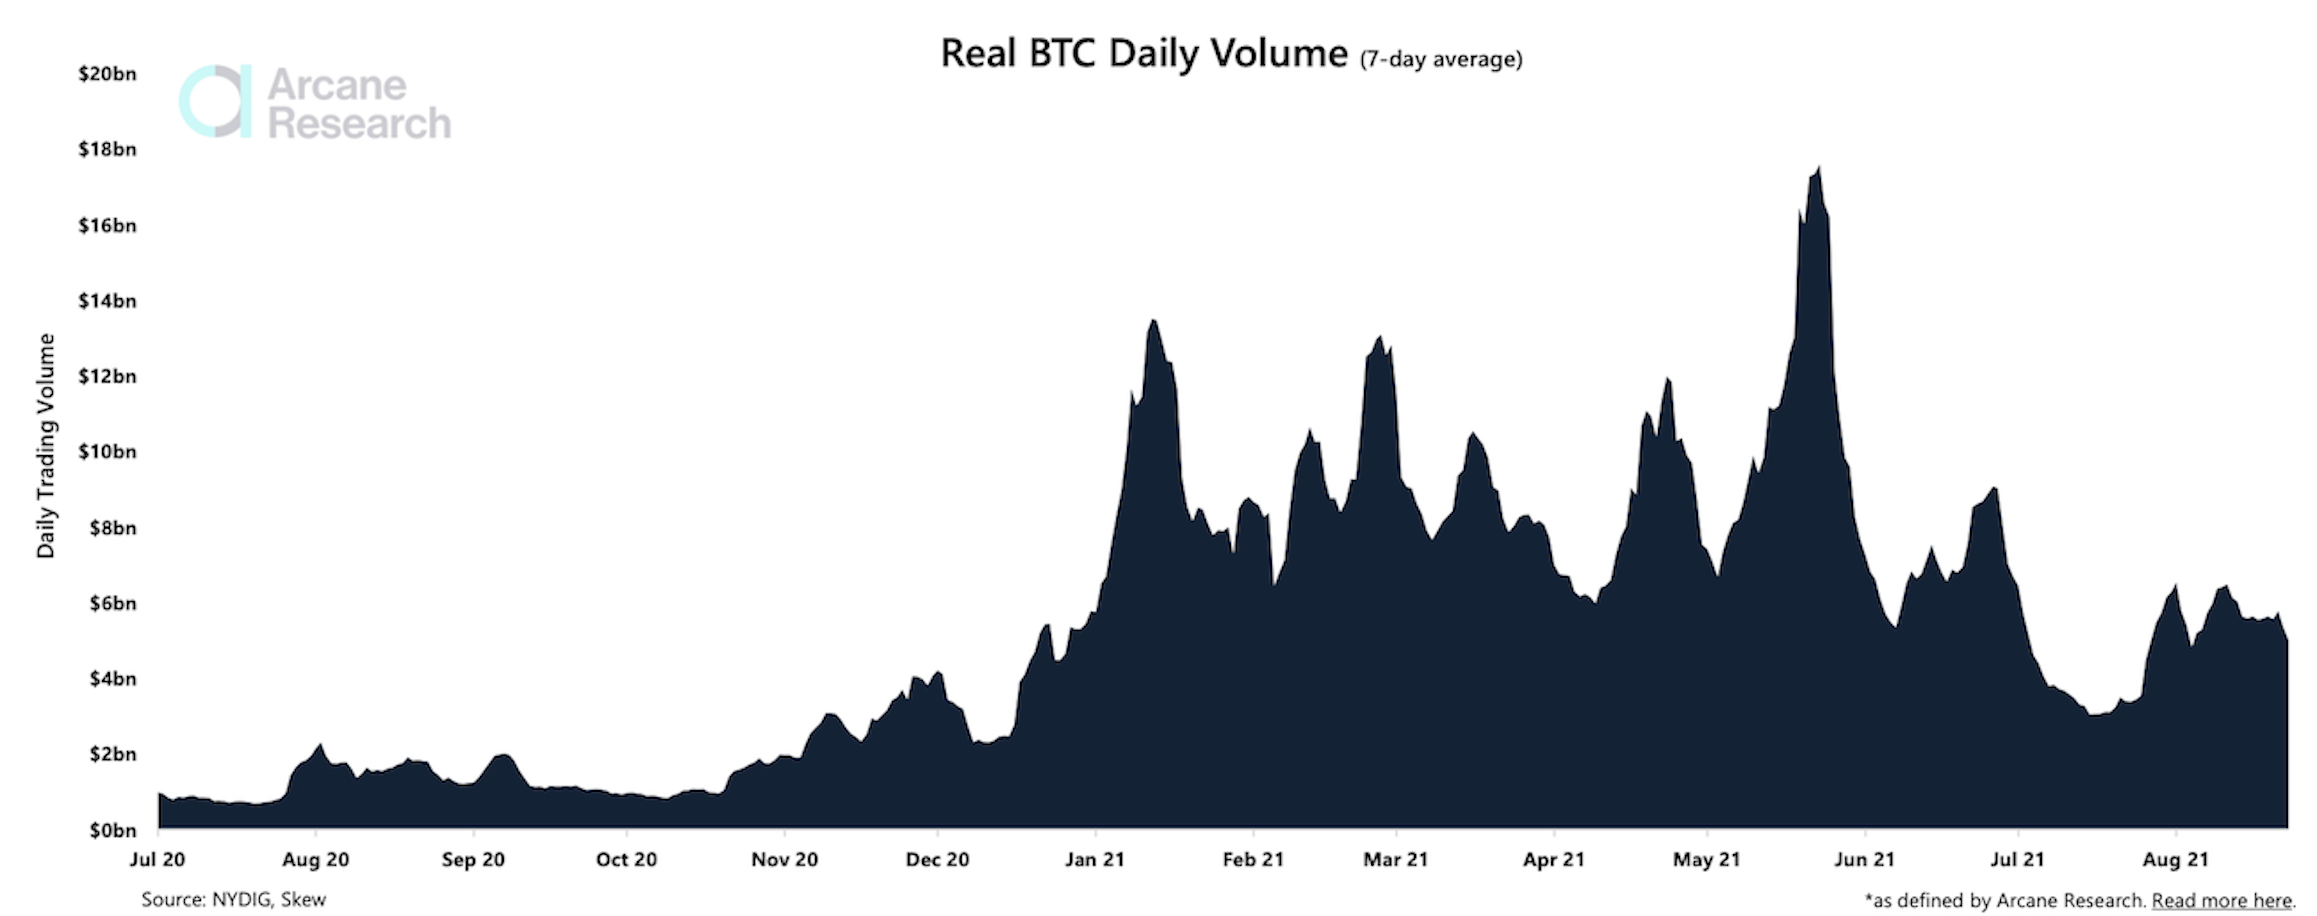 Bitcoin Trading Volume Stays Subdued as Price Recovers